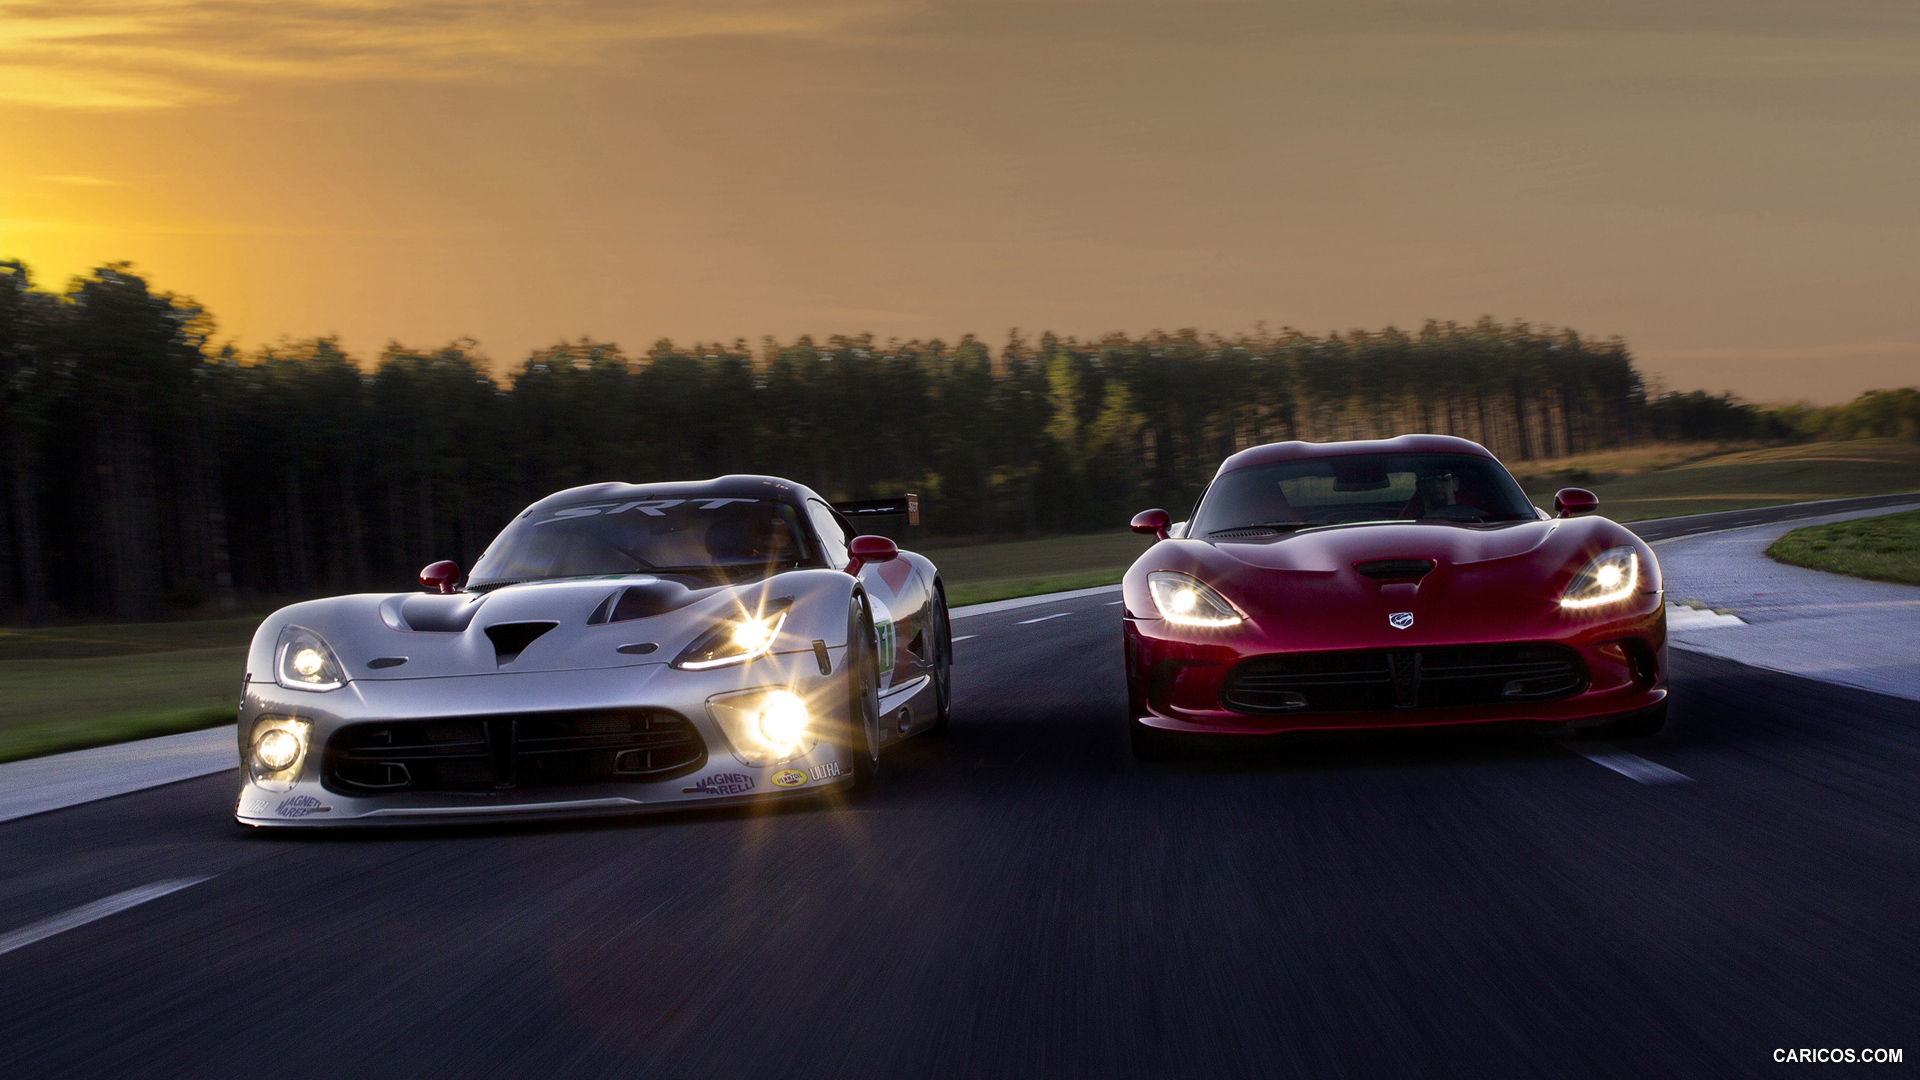 Srt viper wallpaper   SF Wallpaper 1920x1080